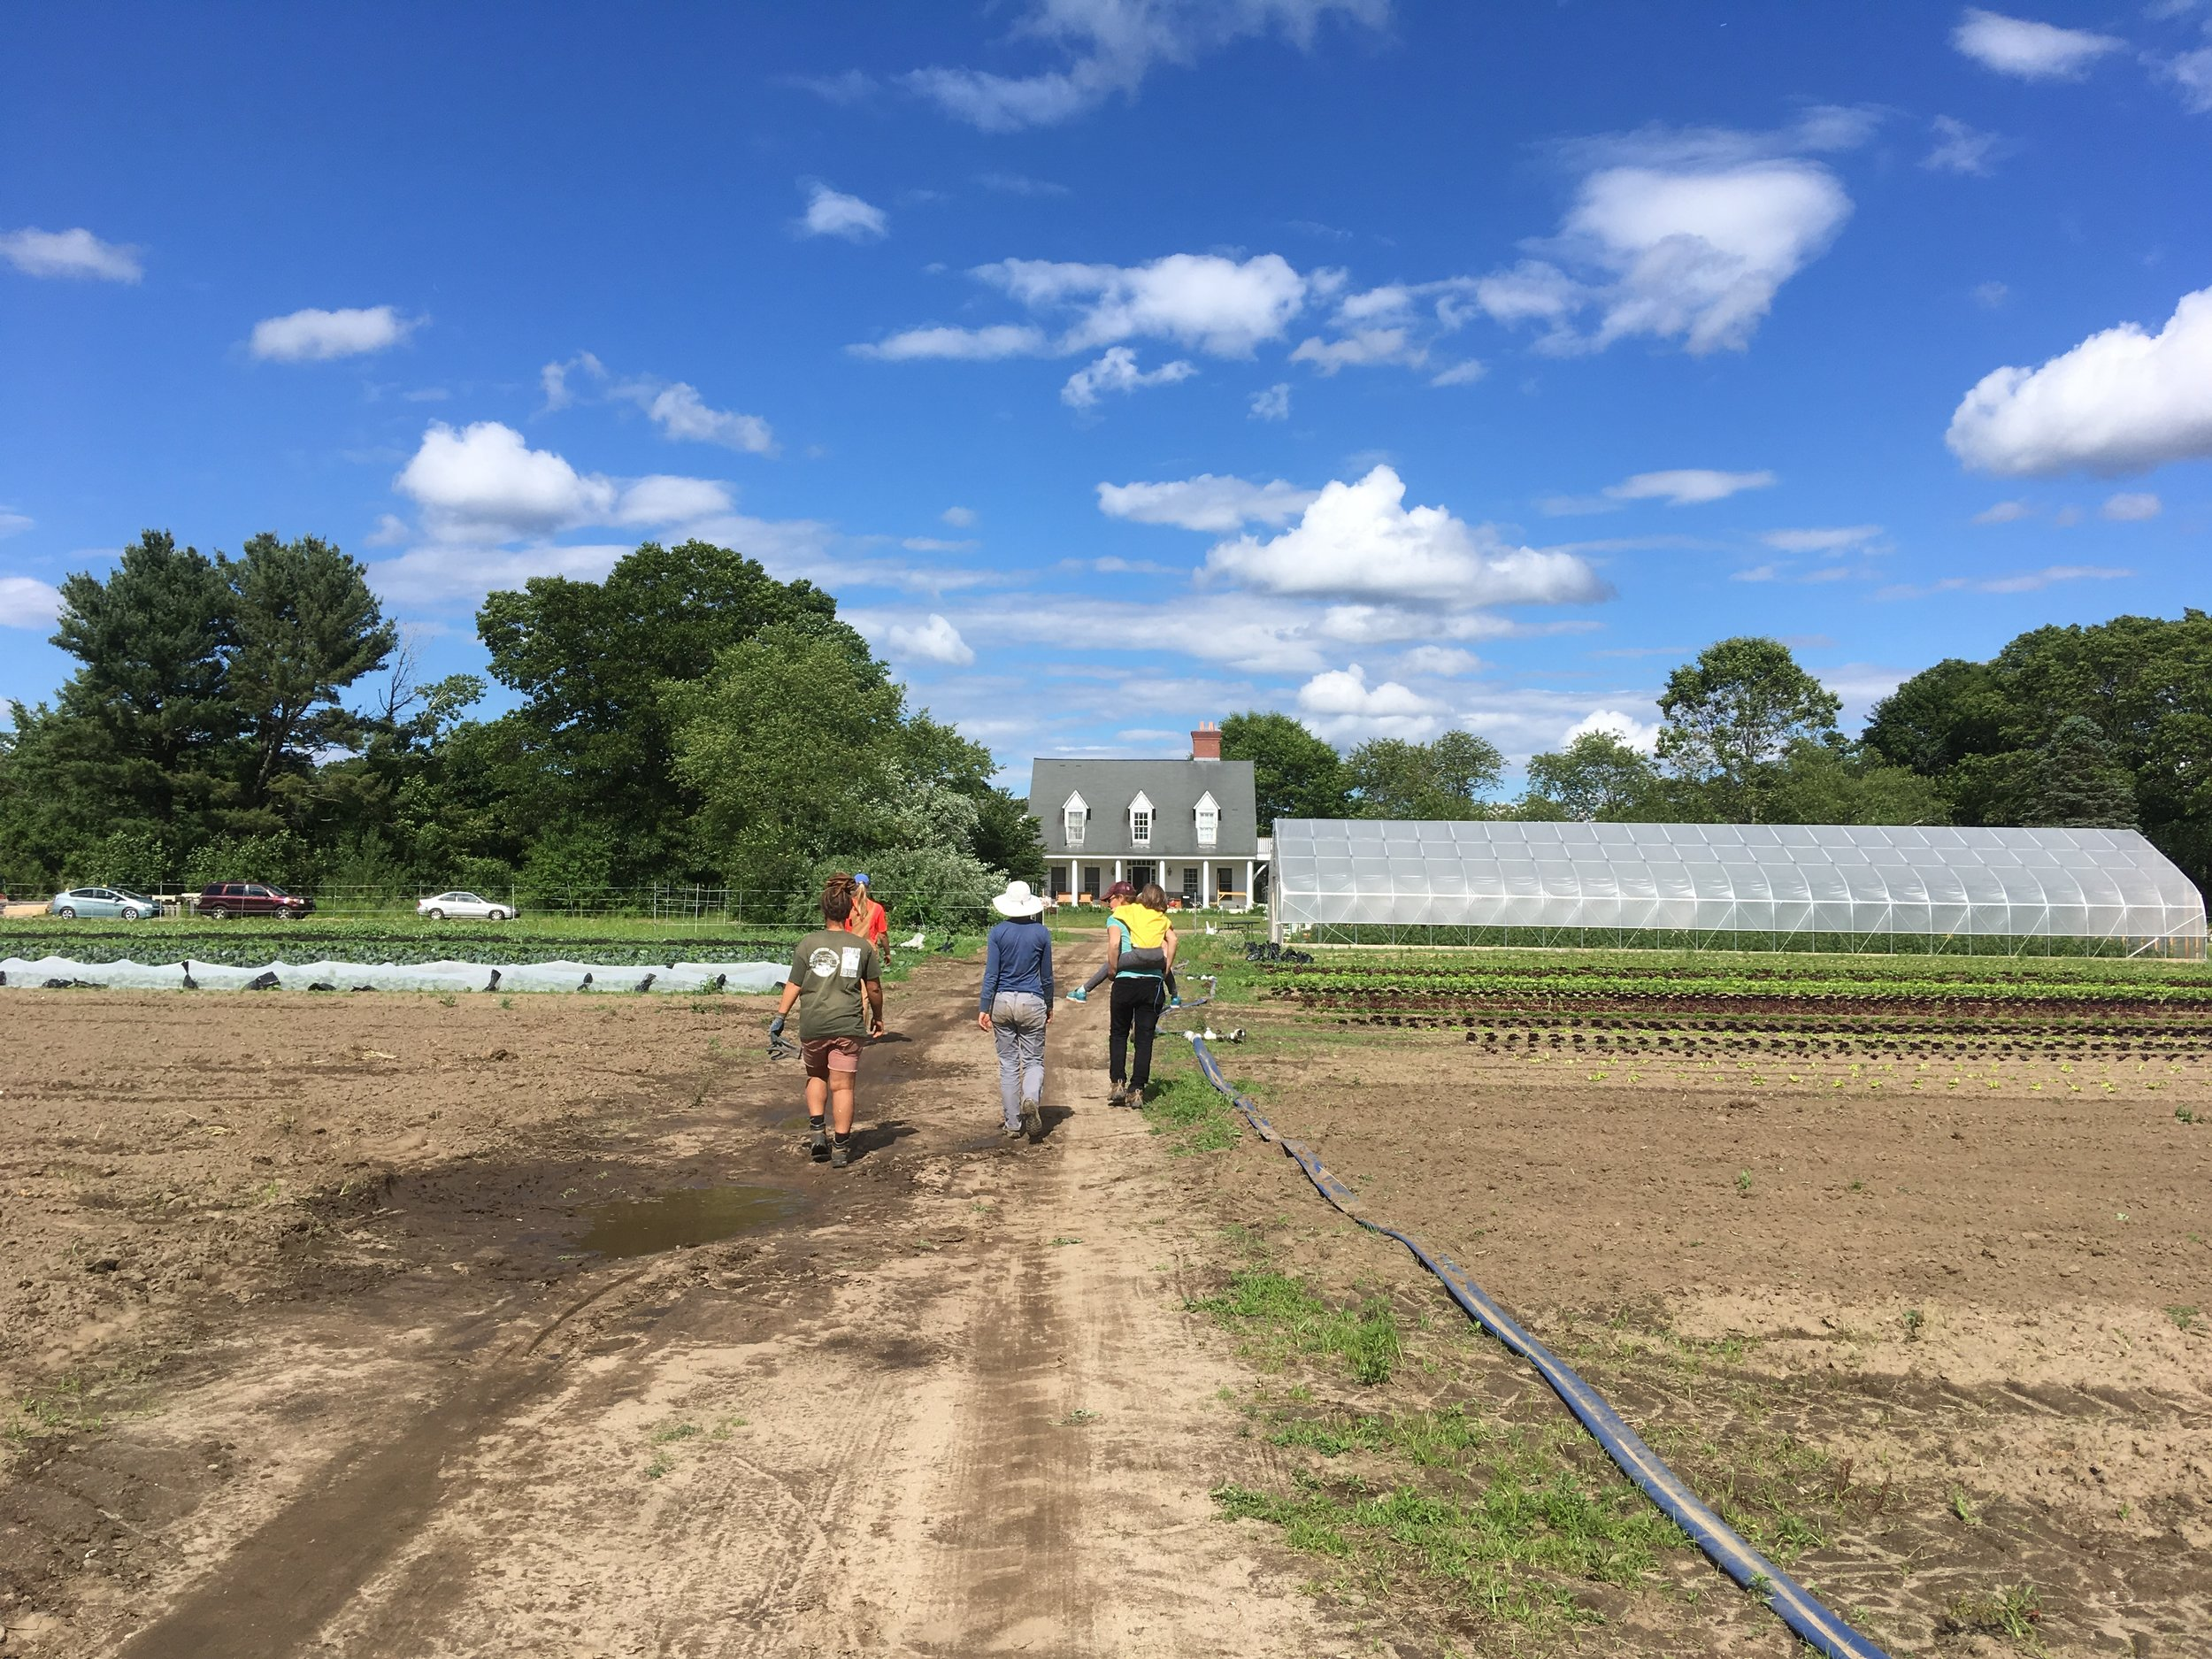 Heading out of the field Friday afternoon after finishing weeding onions (with a little help from a junior buddy!)